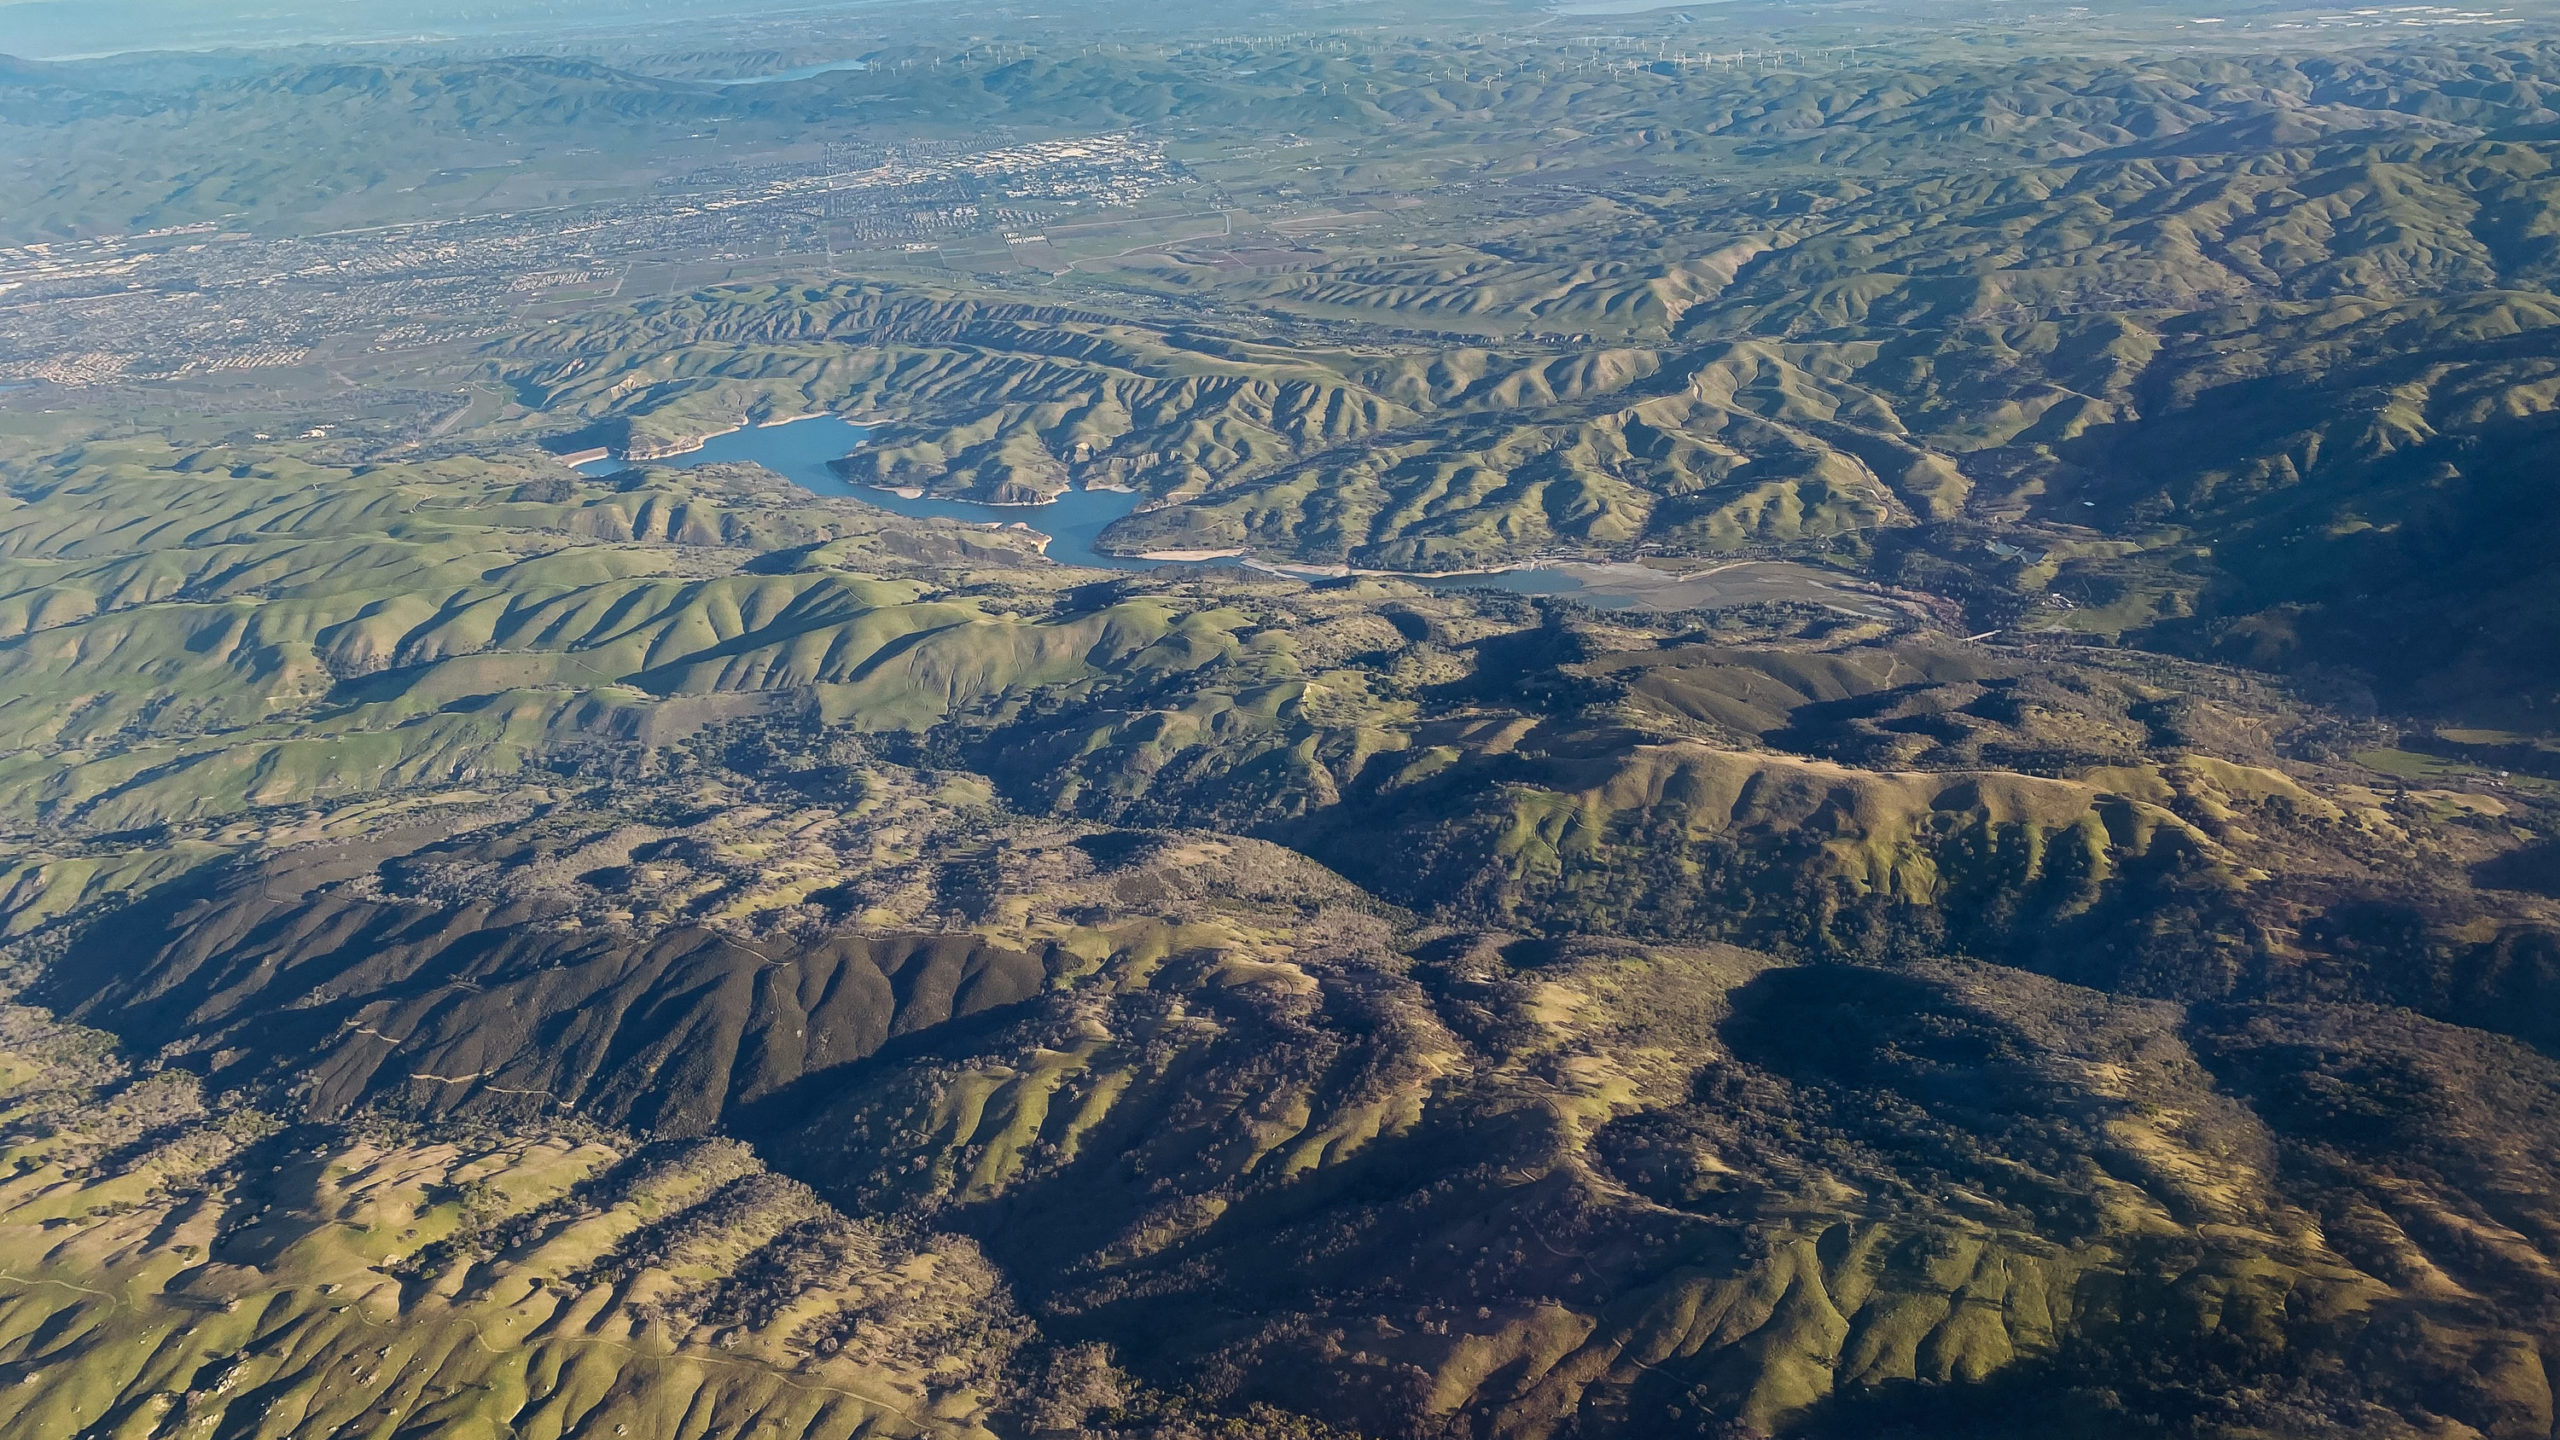 view from plane of California foothills